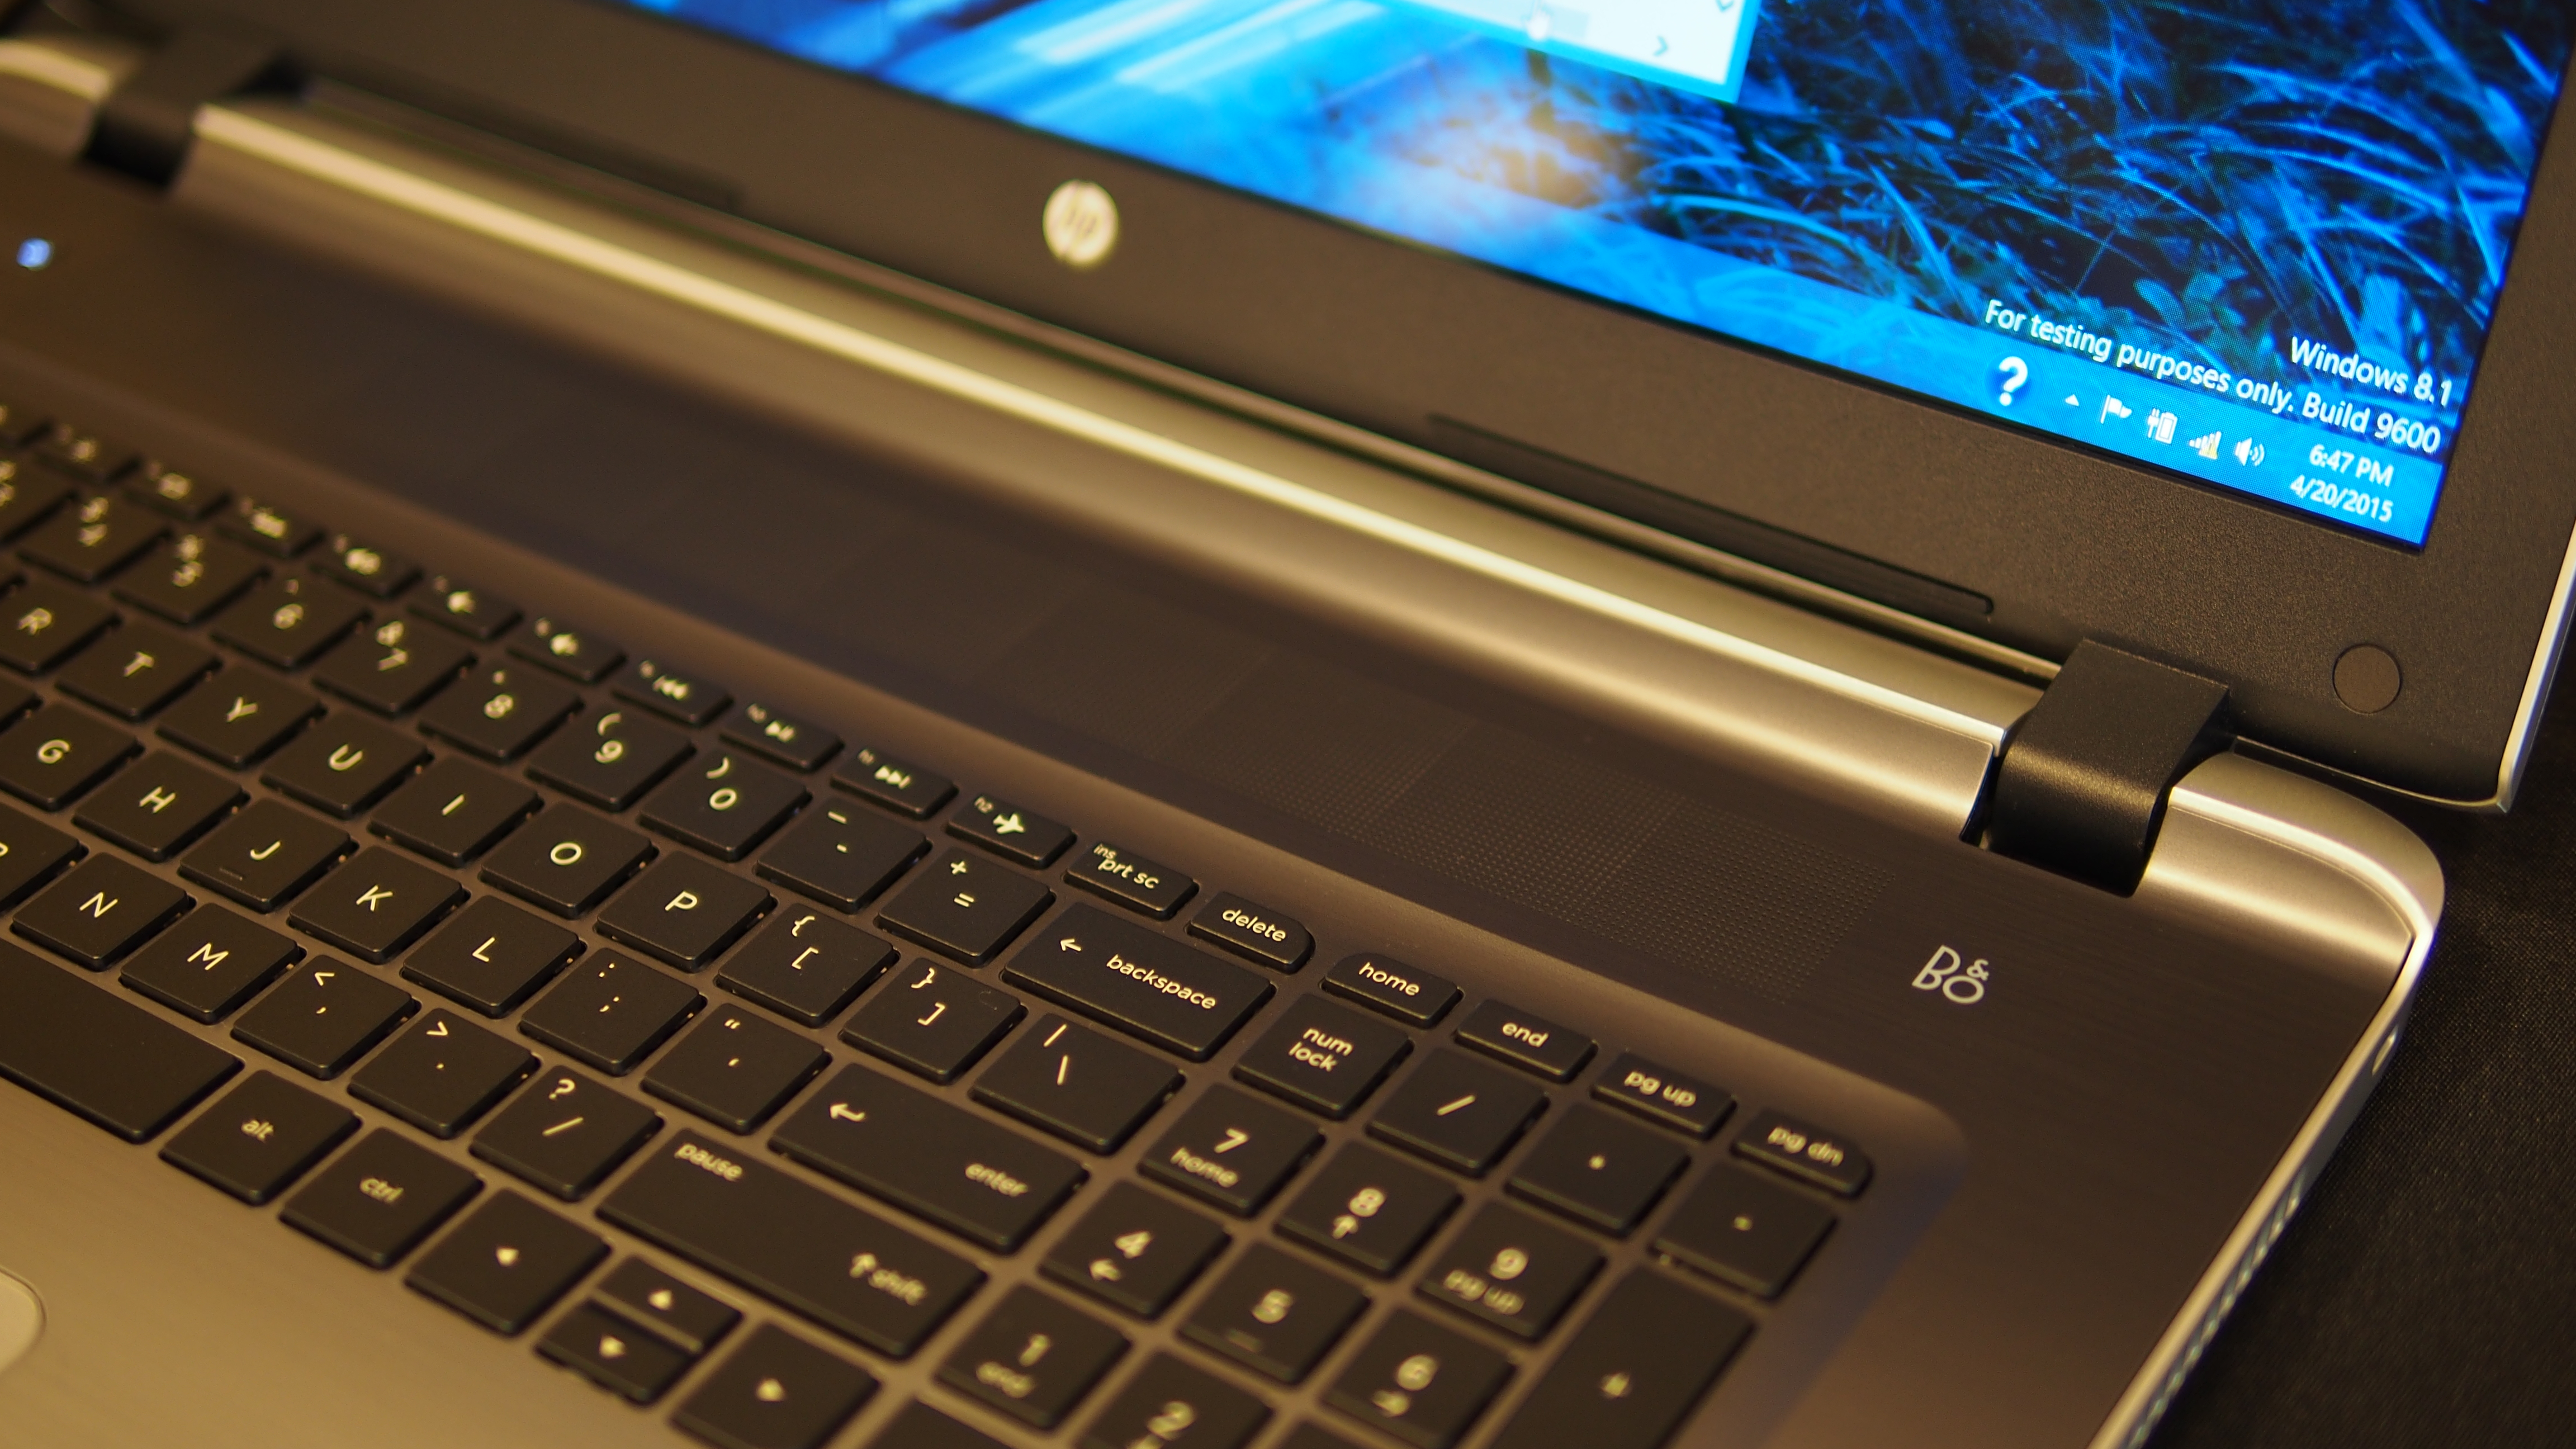 Hands on: HP Pavilion 15 (2015) review